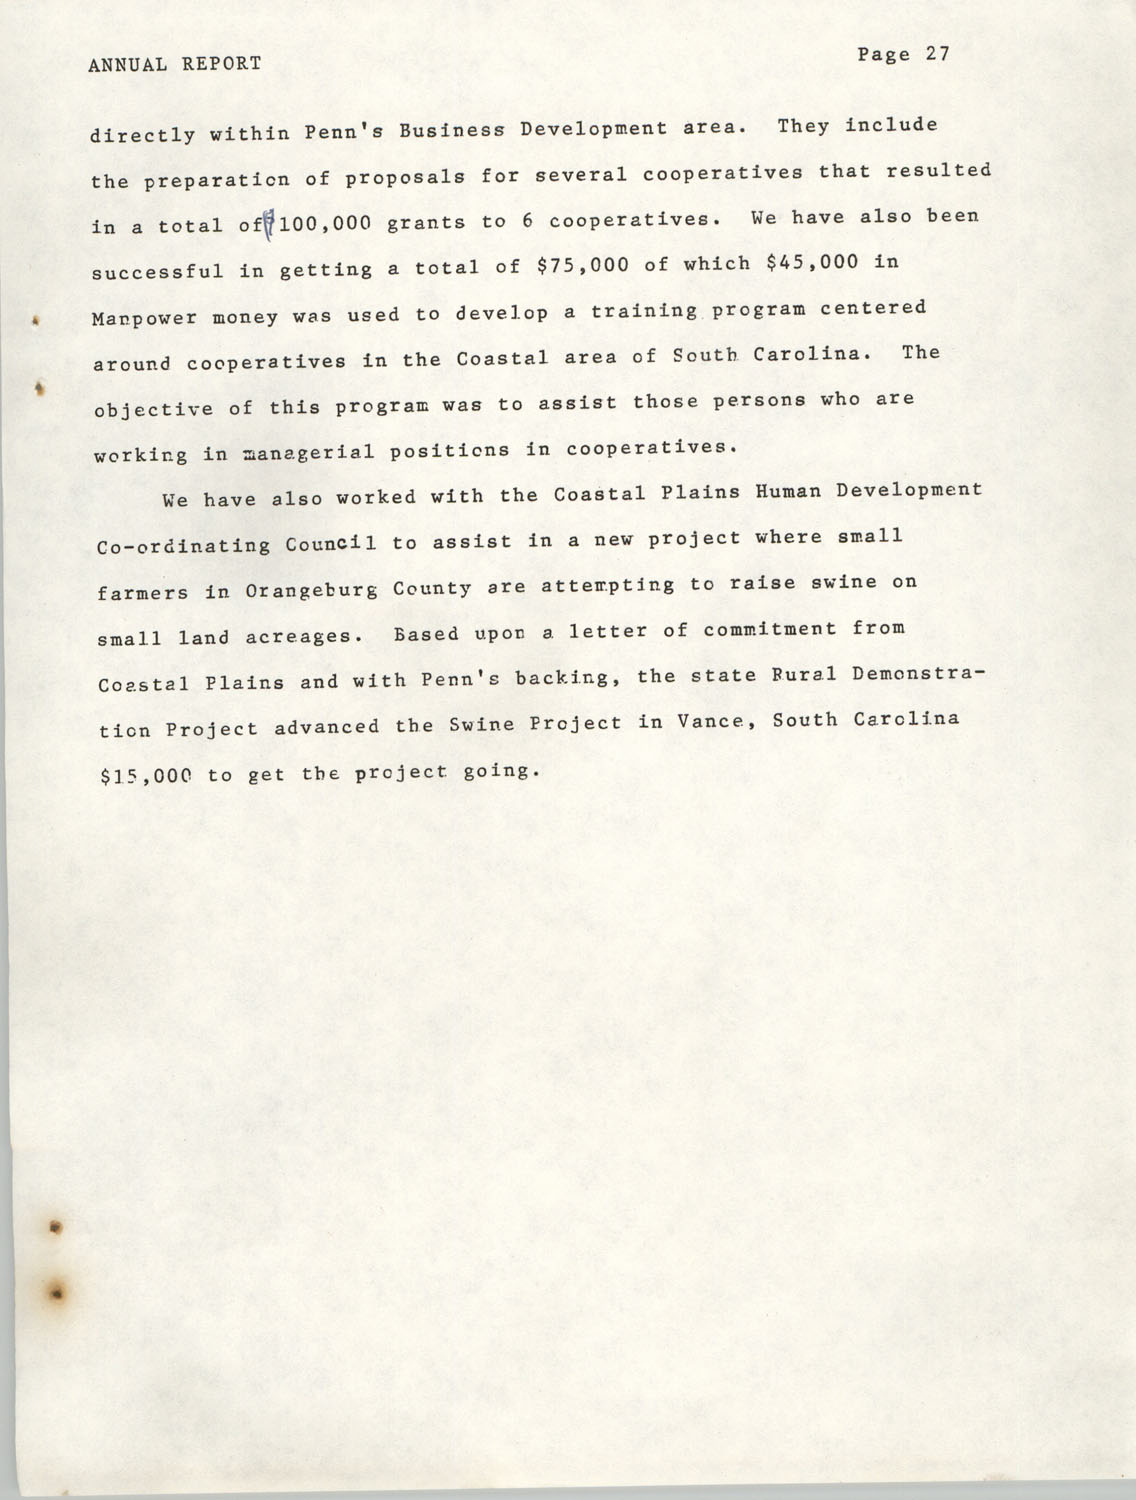 Annual Report, Penn Community Services, 1974, Page 27